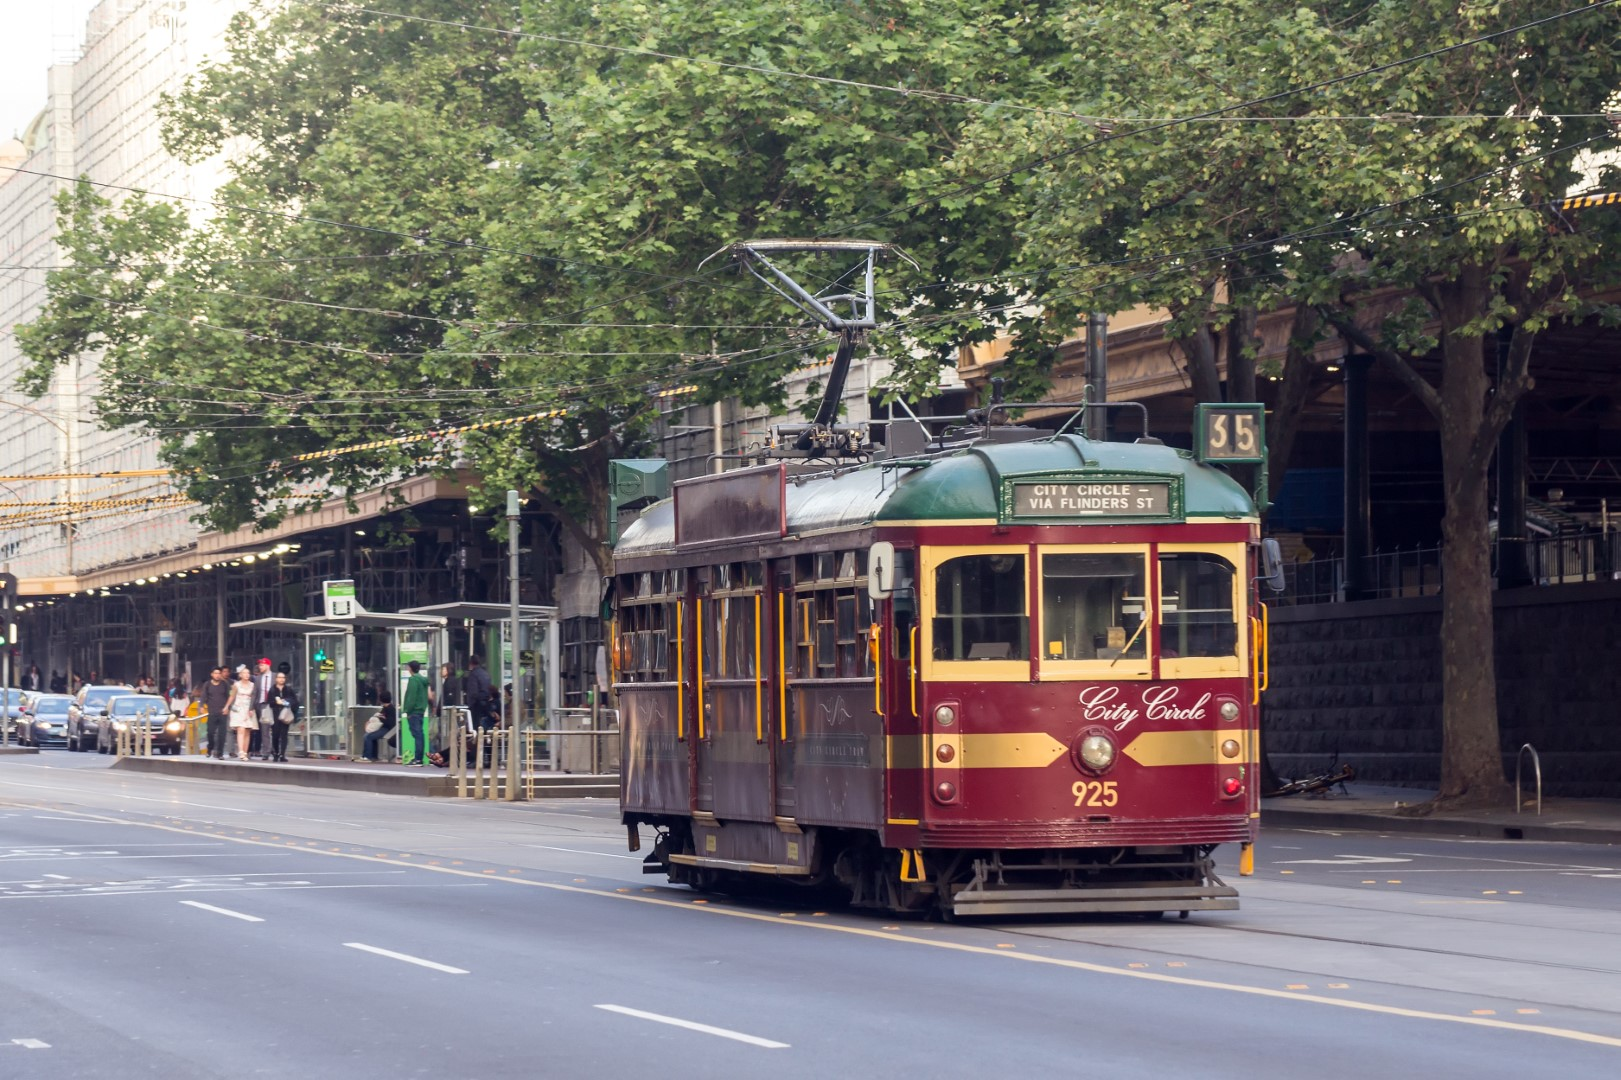 Melbourne City Tram Melbourne 2017 10 28 Large